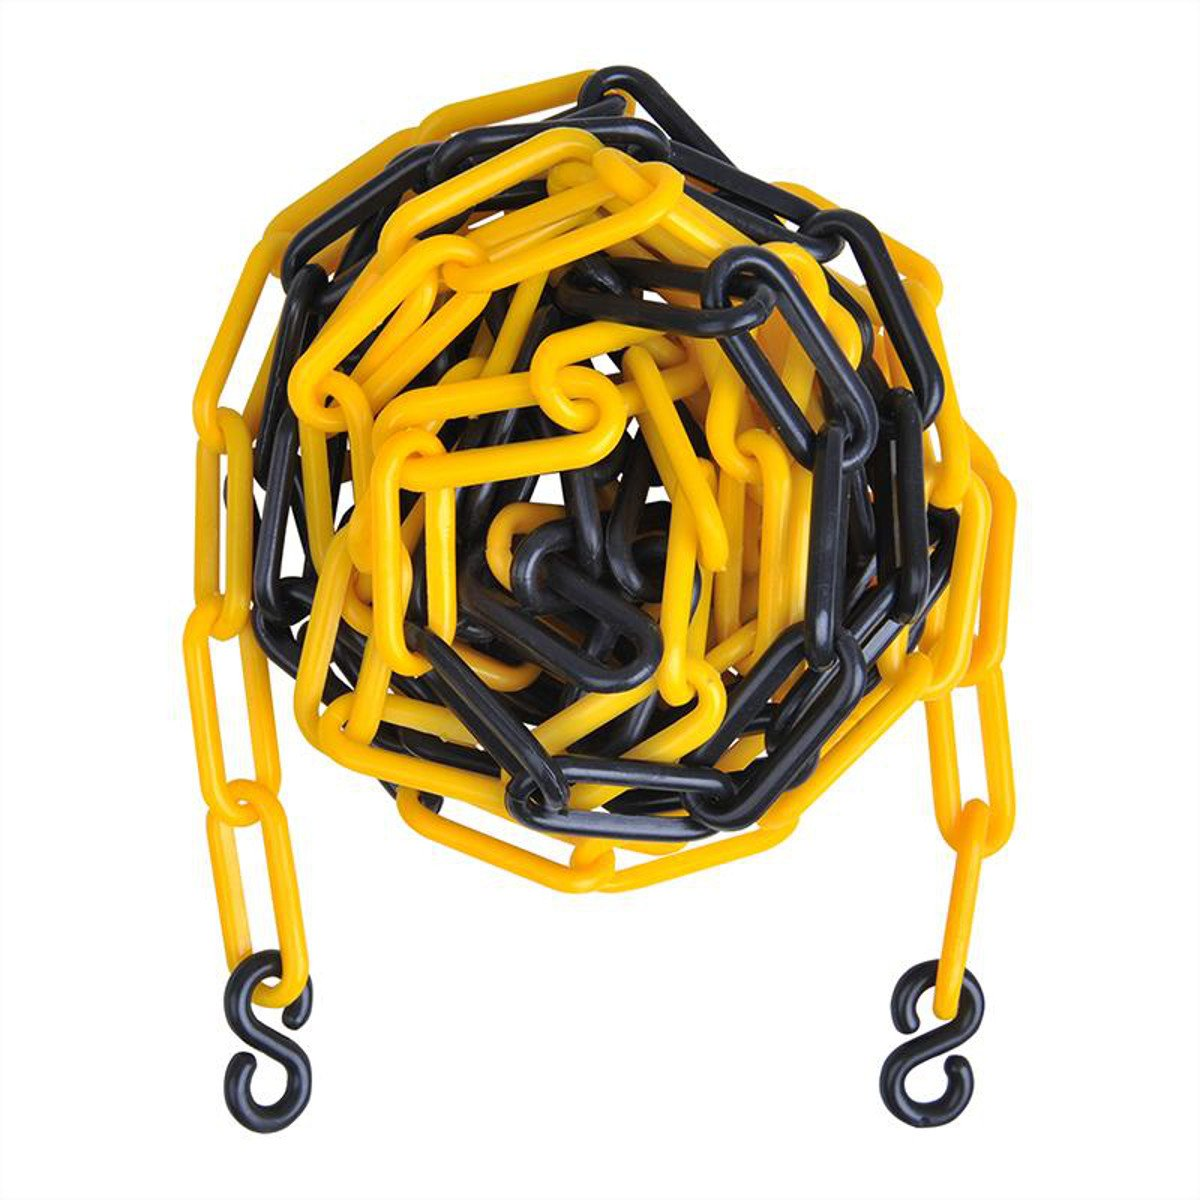 Barrier Tape 5 Metres Diameter 5.5 mm Parking Space Barrier Assorted Colours Plastic Chain with Hook, yellow Preiswert&Gut